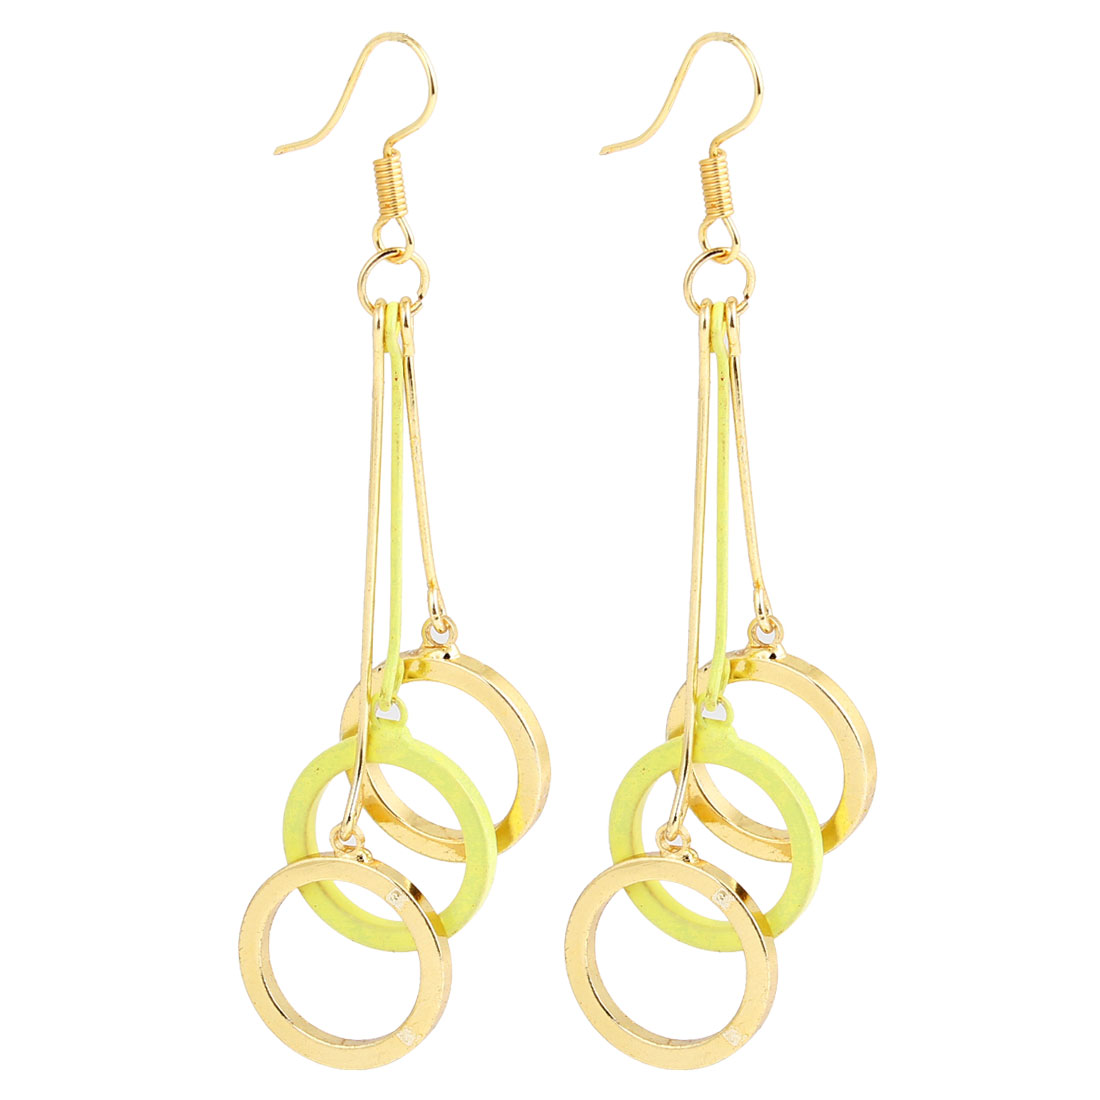 Gold Tone Yellow Round Circles Pendant Fish Hook Earrings for Women